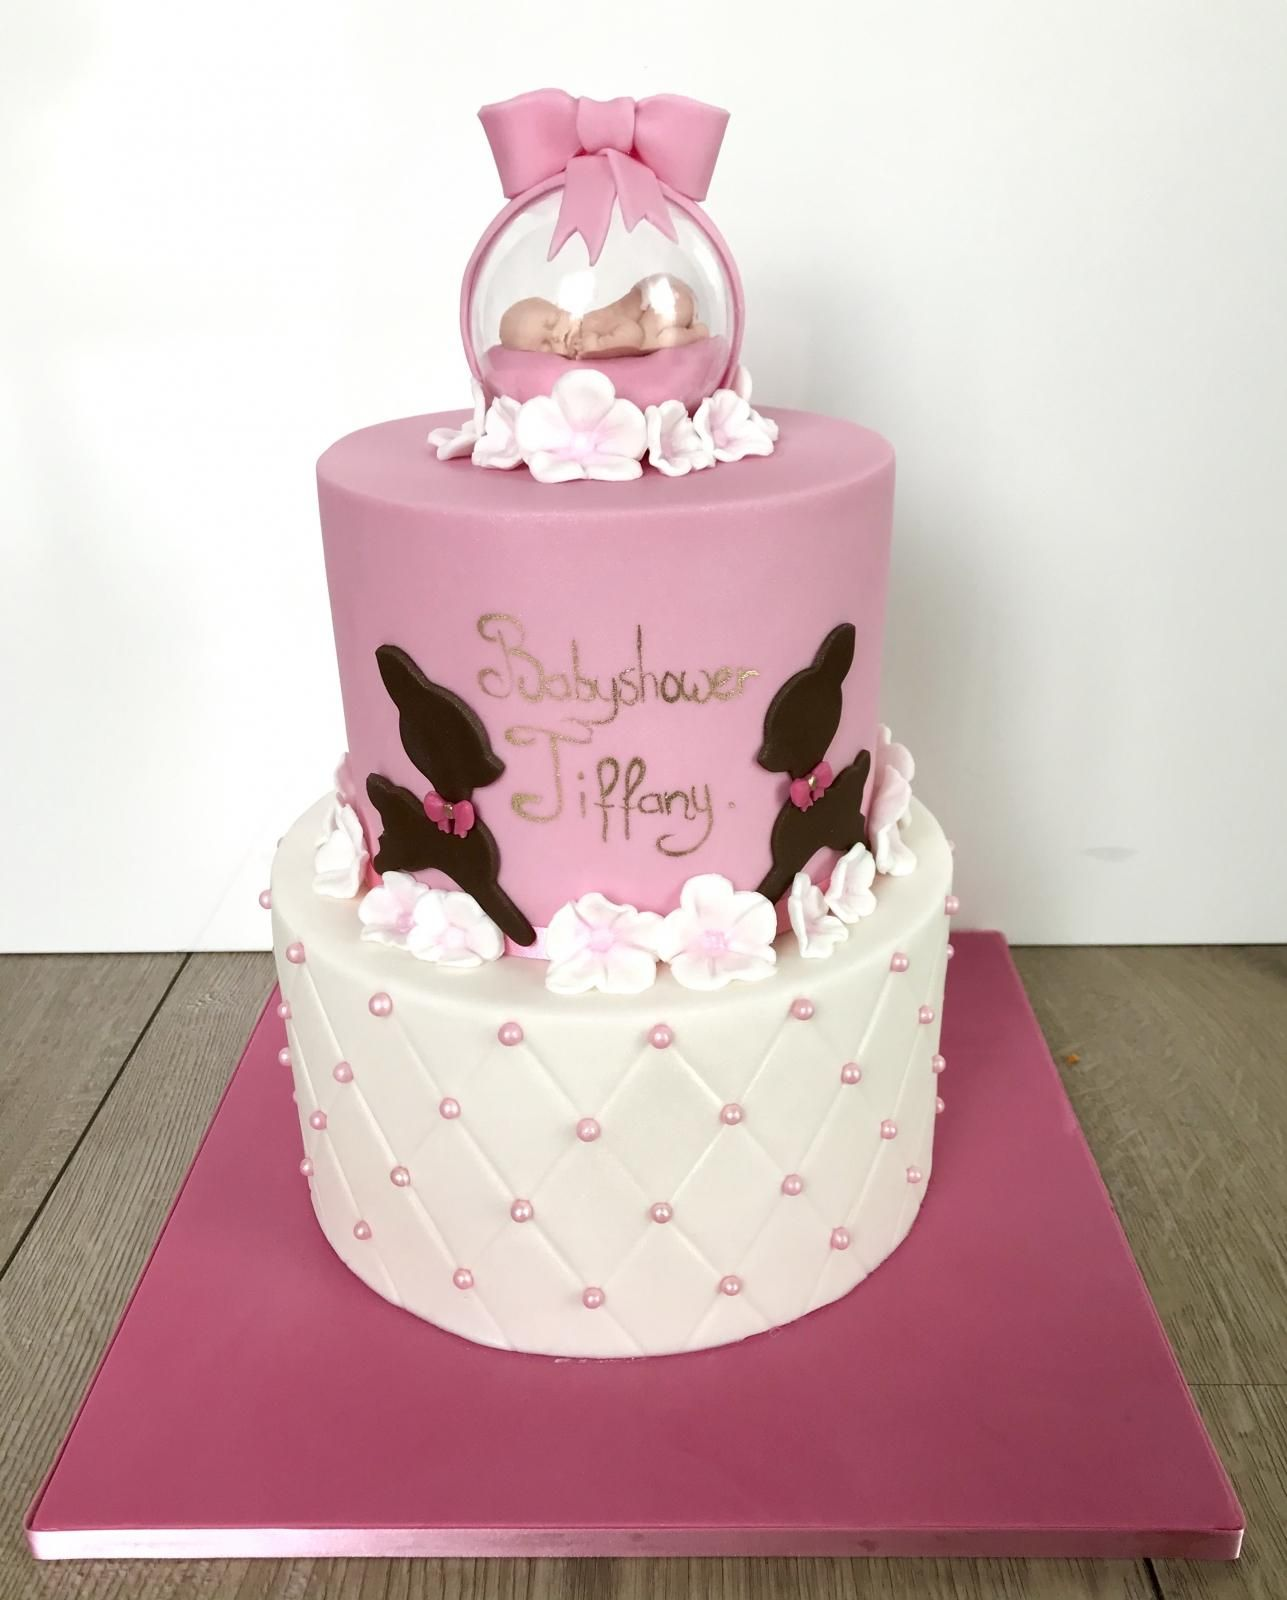 custommade babyshower cake